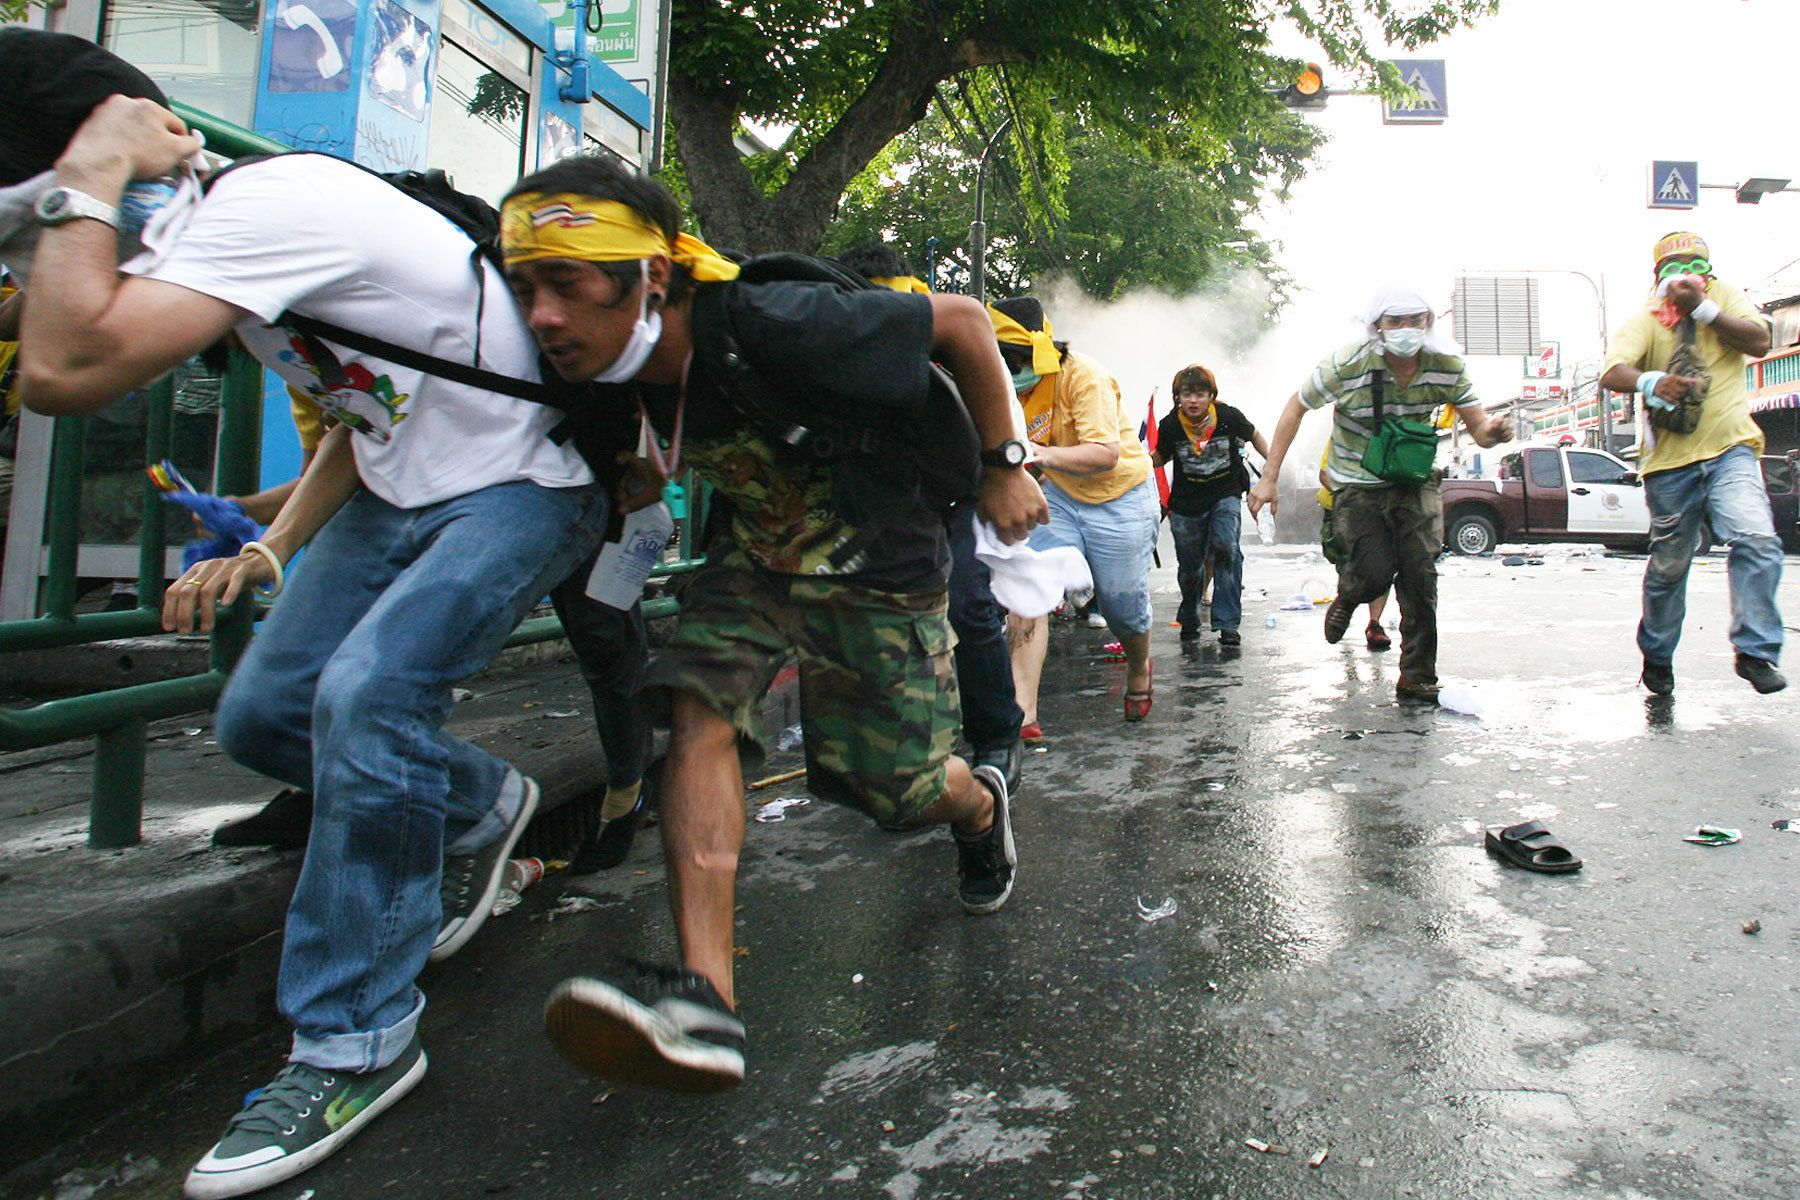 Demonstrators of People's Alliance for Democracy (PAD) shelter from tear gas.